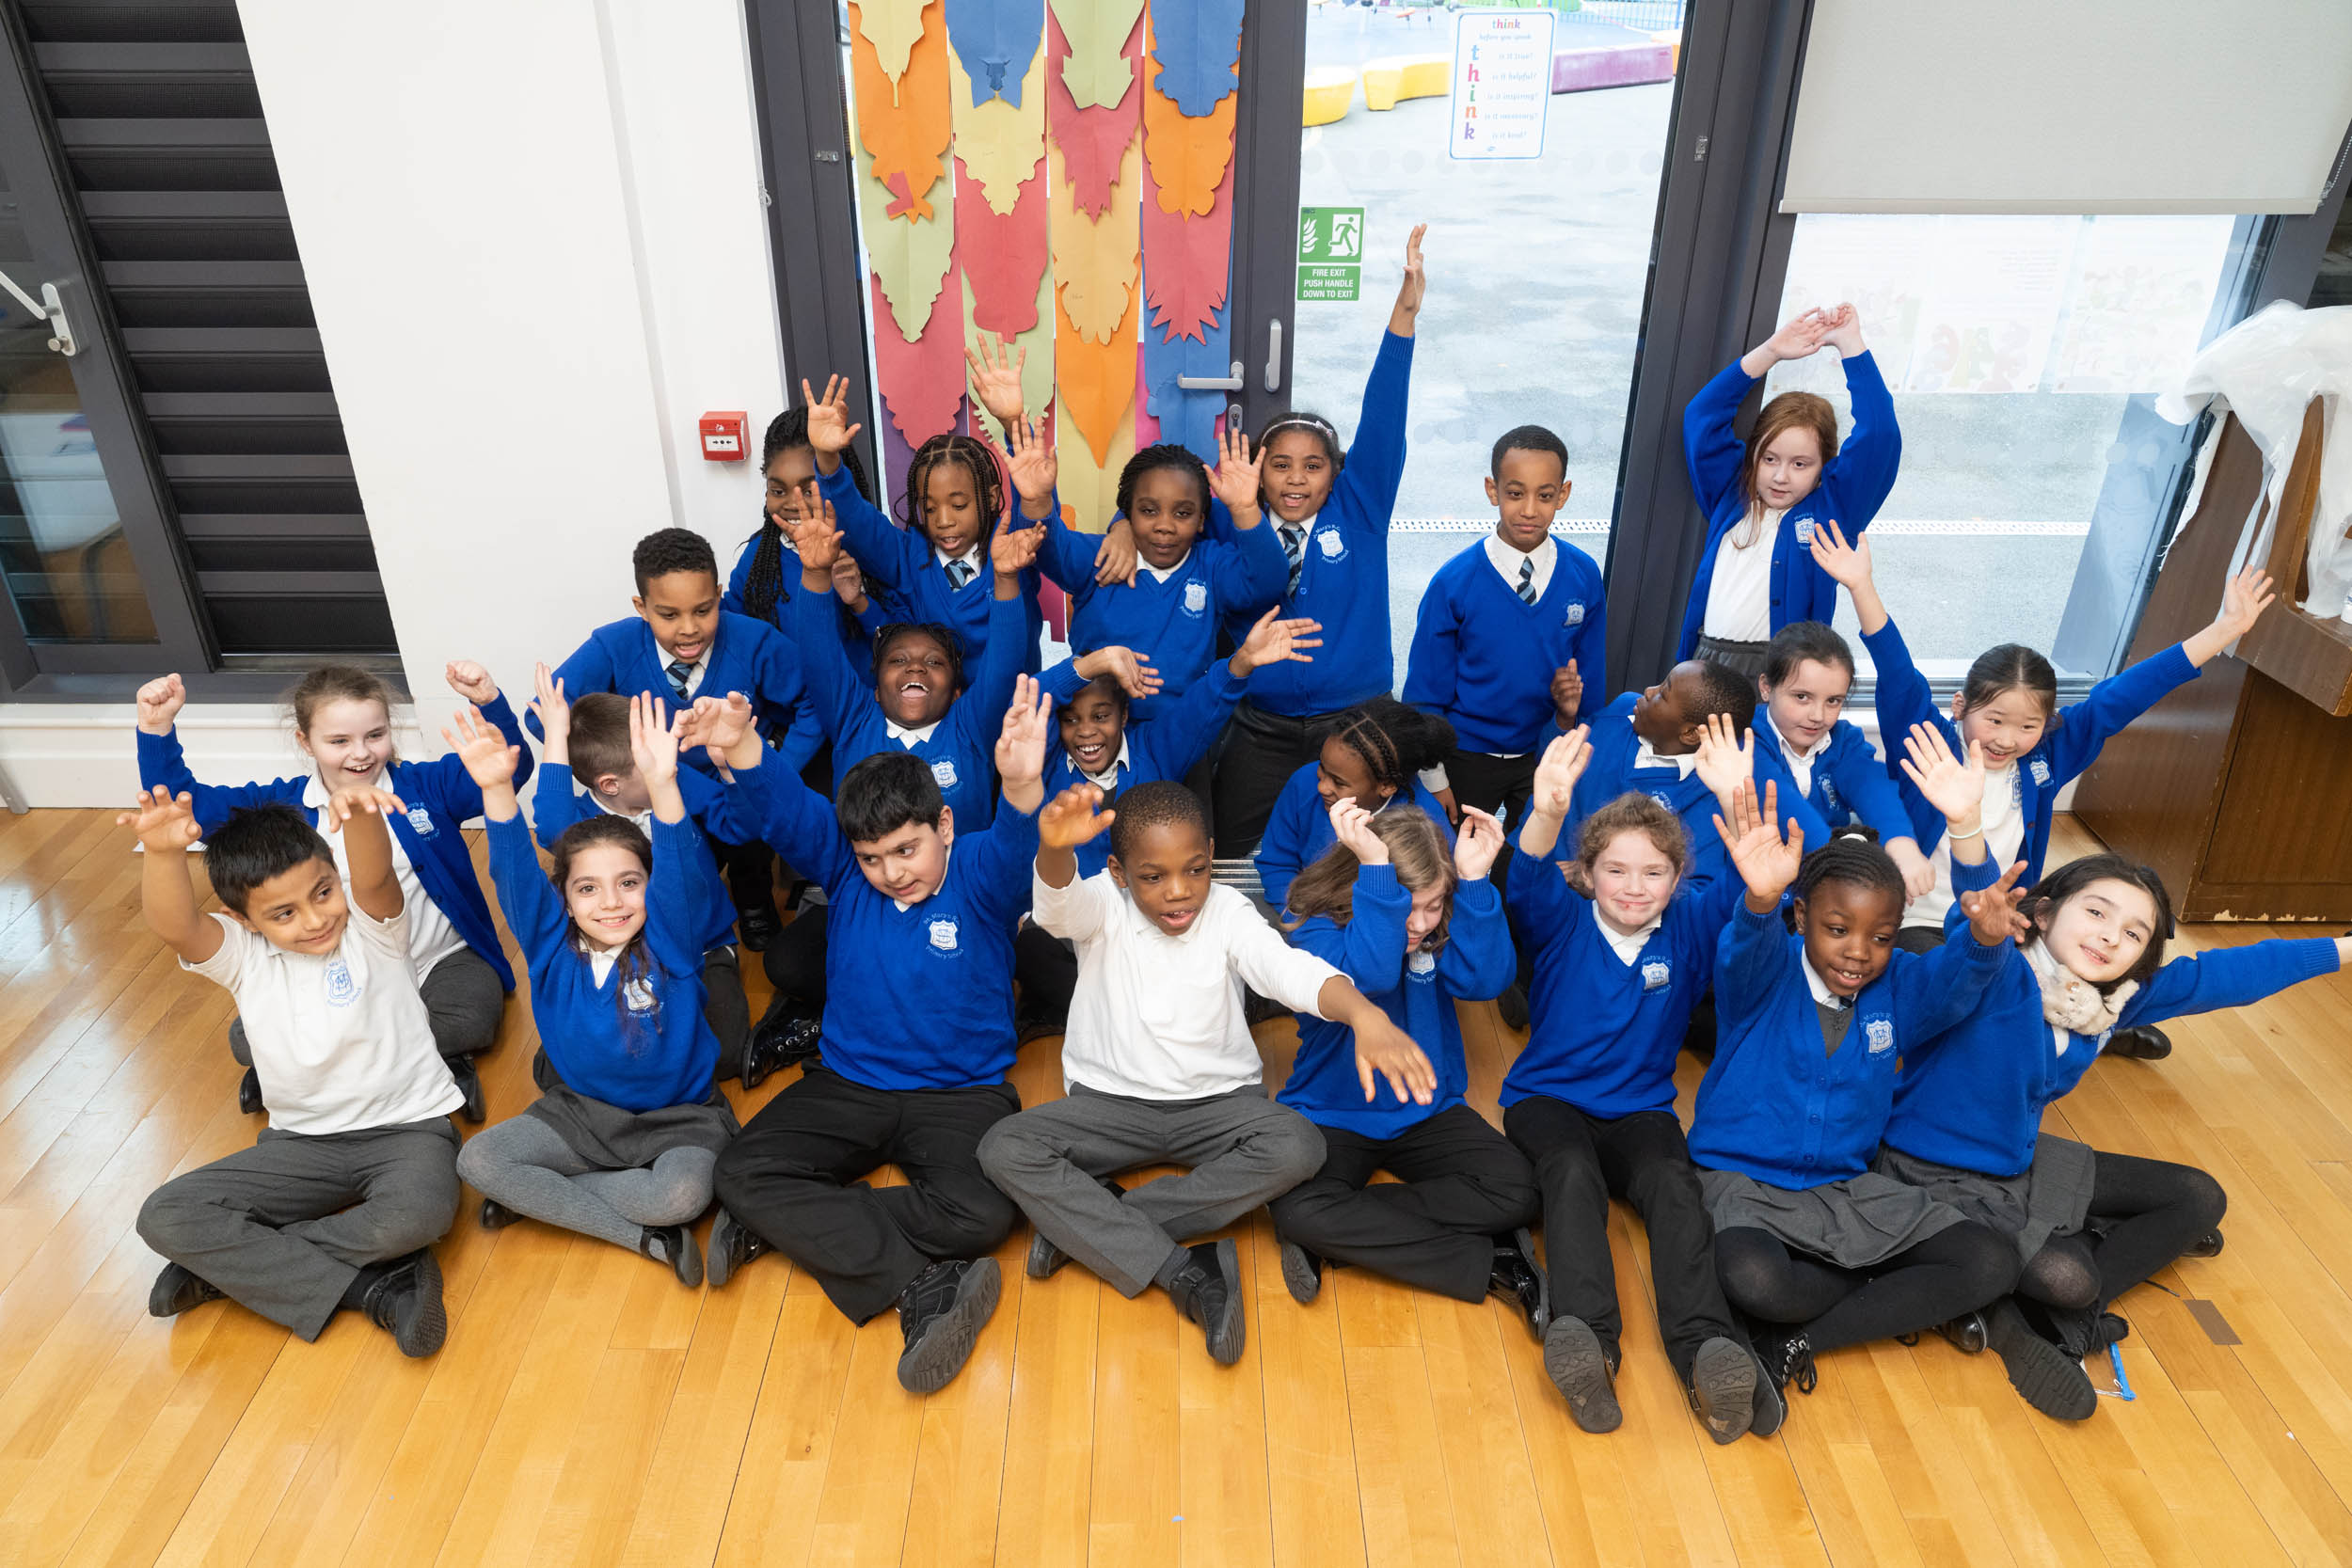 St Mary's RC Primary in Nine Elms with their daggerboard designs